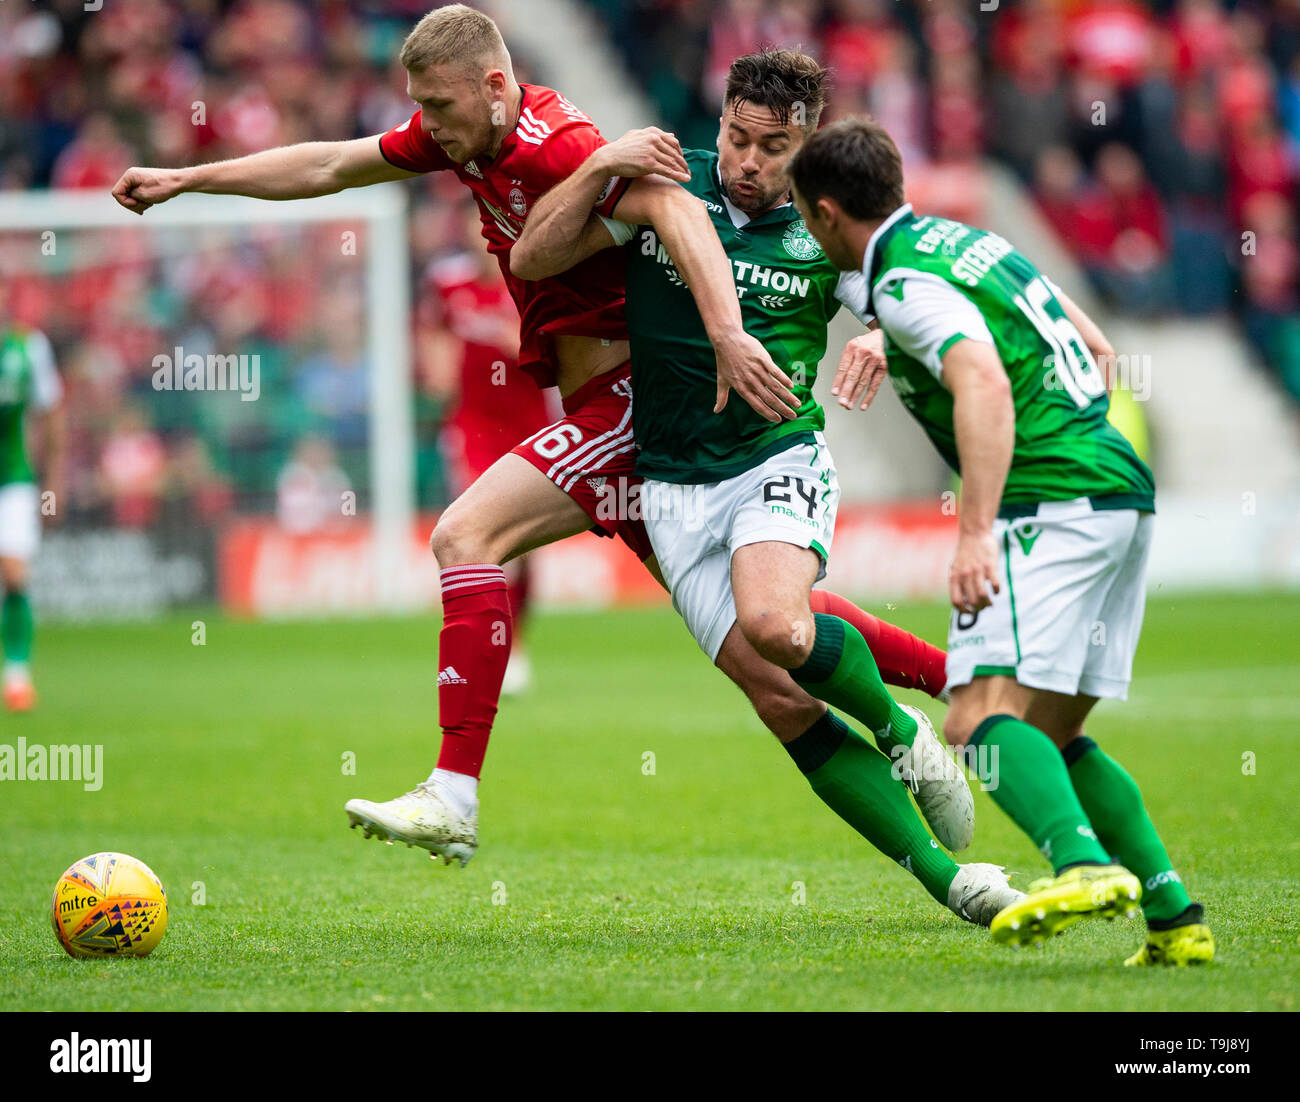 Edinburgh, Scotland, UK. 19th May, 2019. Edinburgh, Scotland, UK. 19th May, 2019.  Pic shows: Aberdeen midfielder, Sam Cosgrove, and Hibs' defender, Darren McGregor, tussle for the ball during the first half as Hibs play host to Aberdeen at Easter Road Stadium, Edinburgh Credit: Ian Jacobs/Alamy Live News - Stock Image